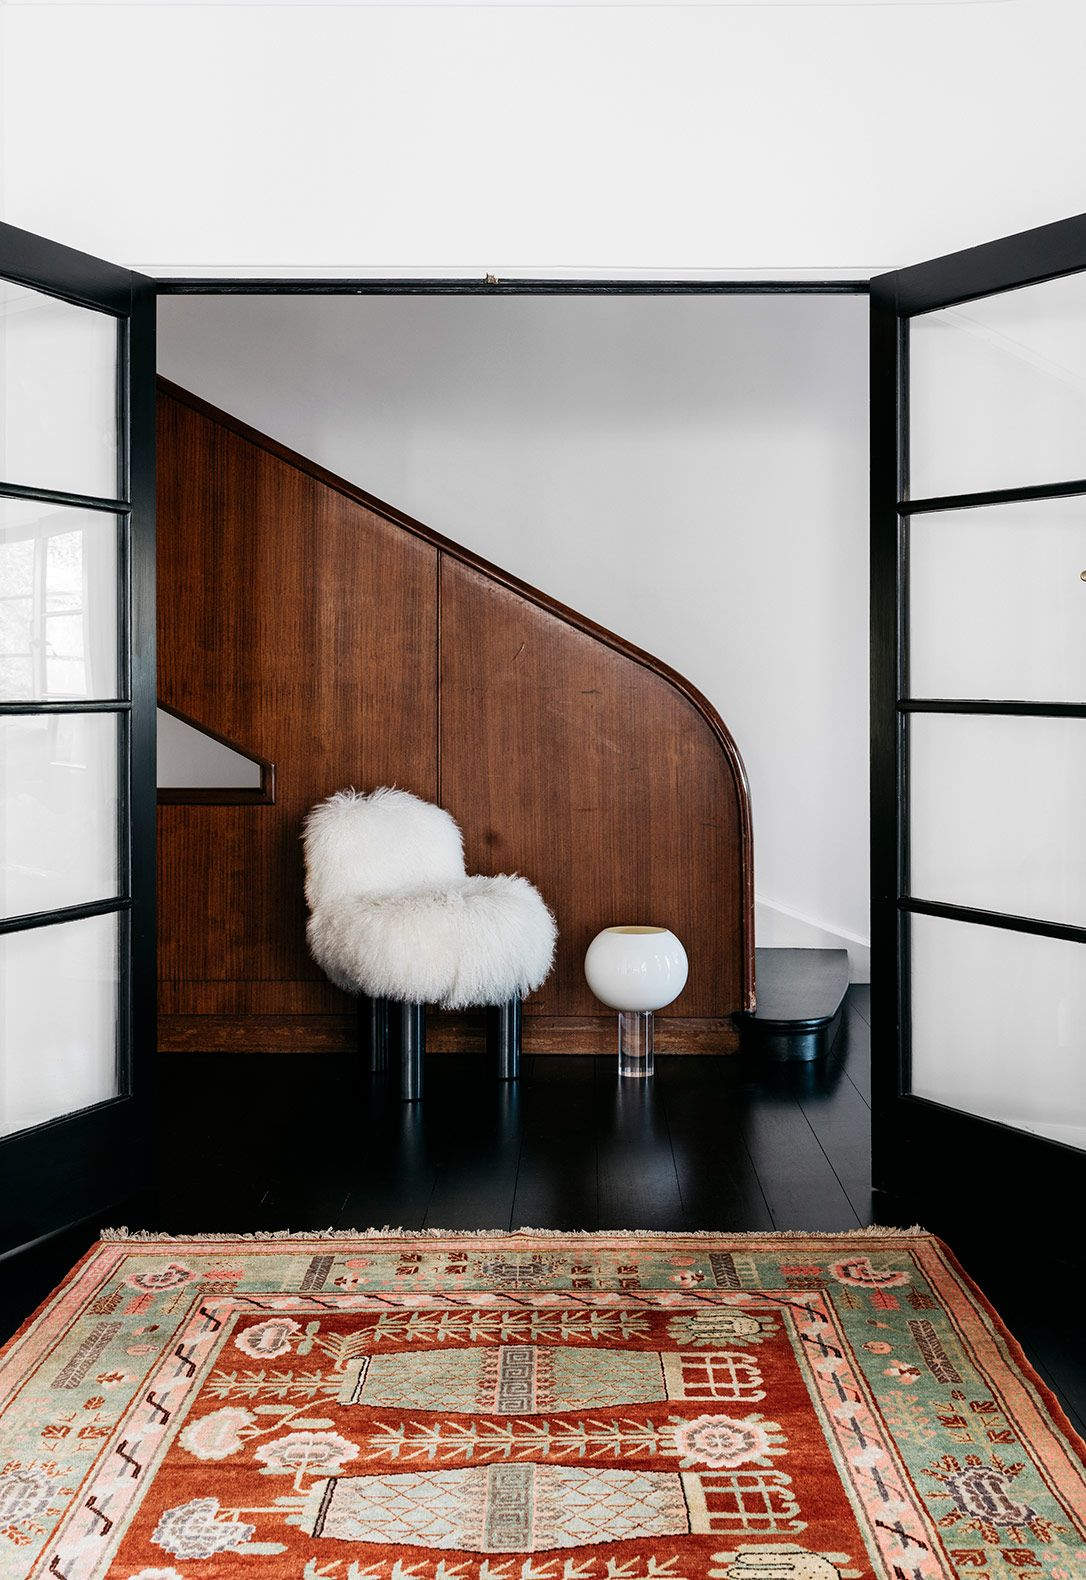 Arent Pyke Again With Images Interior Design Awards 2018